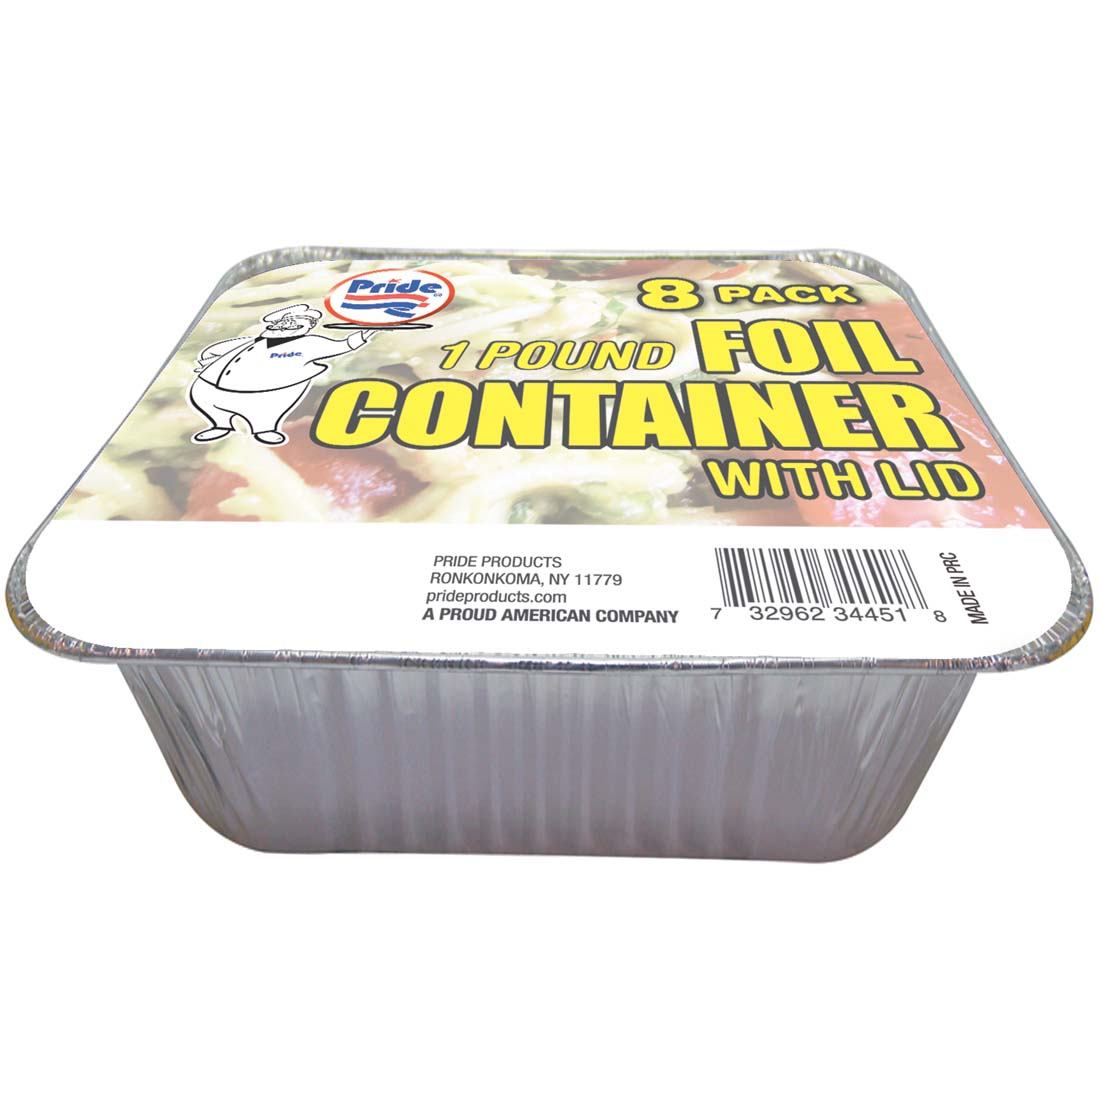 View FOIL CONTAINER OBLONG 1 POUND WITH BOARD LID 8 PACK